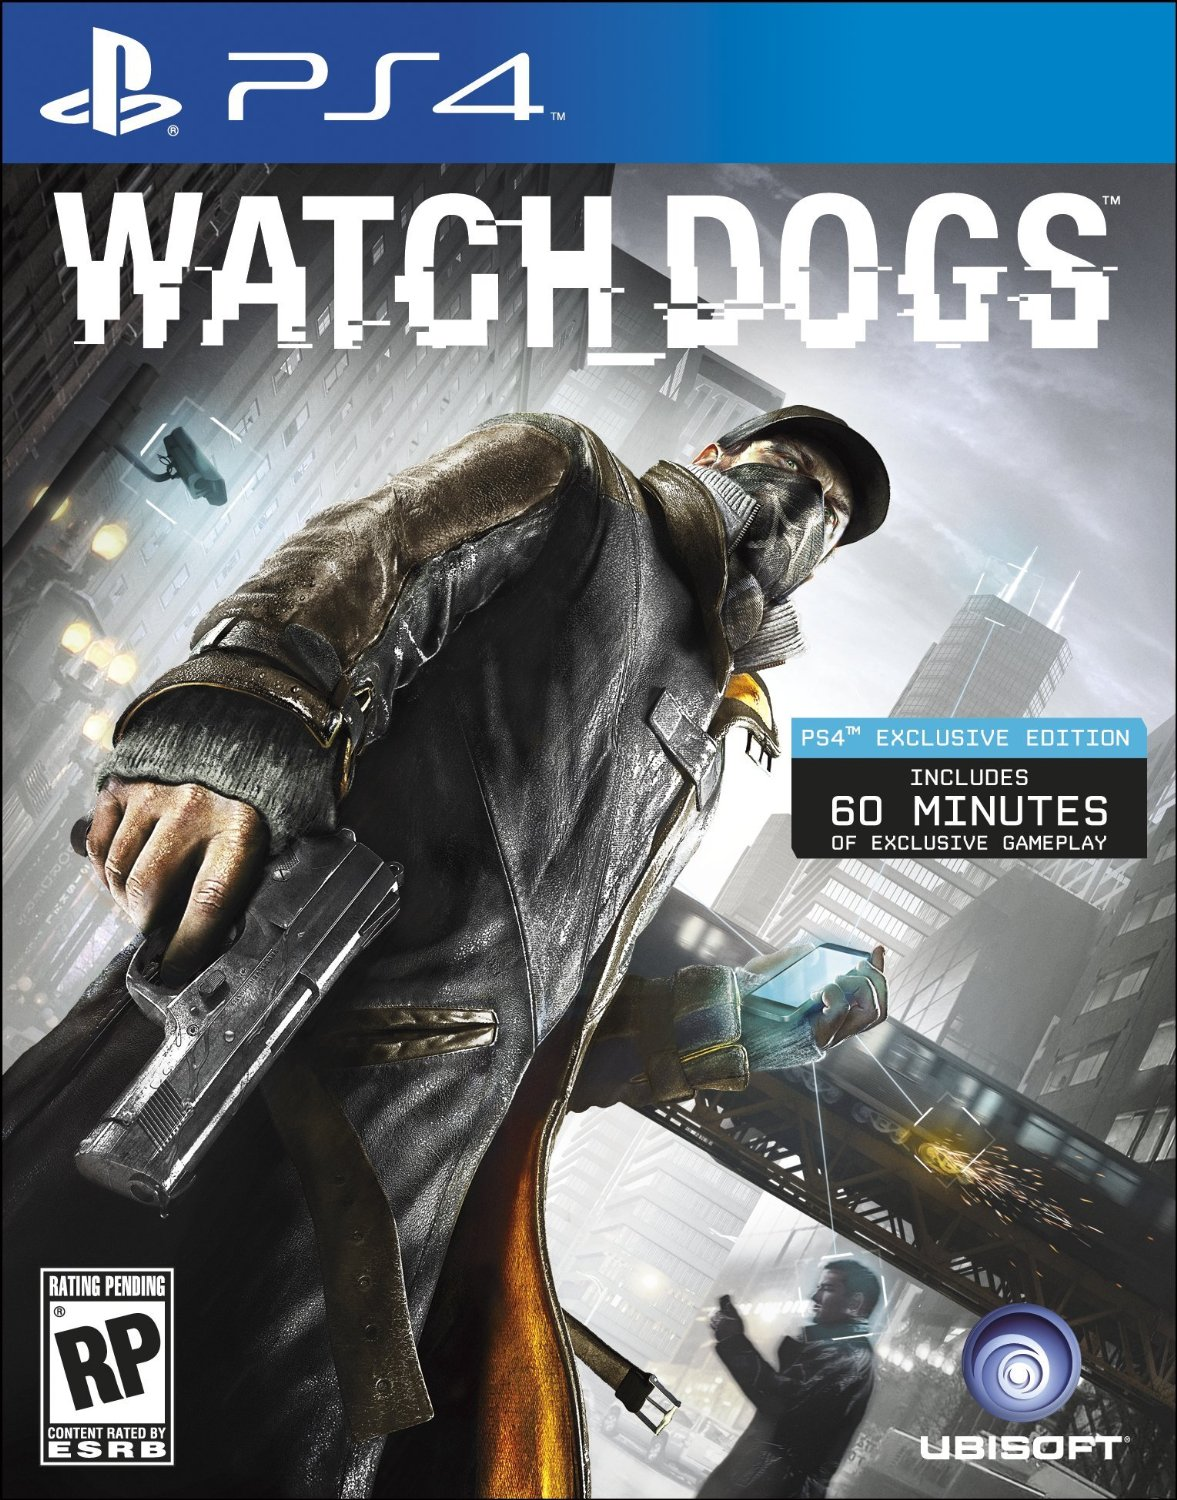 Watch_Dogs_cover_art